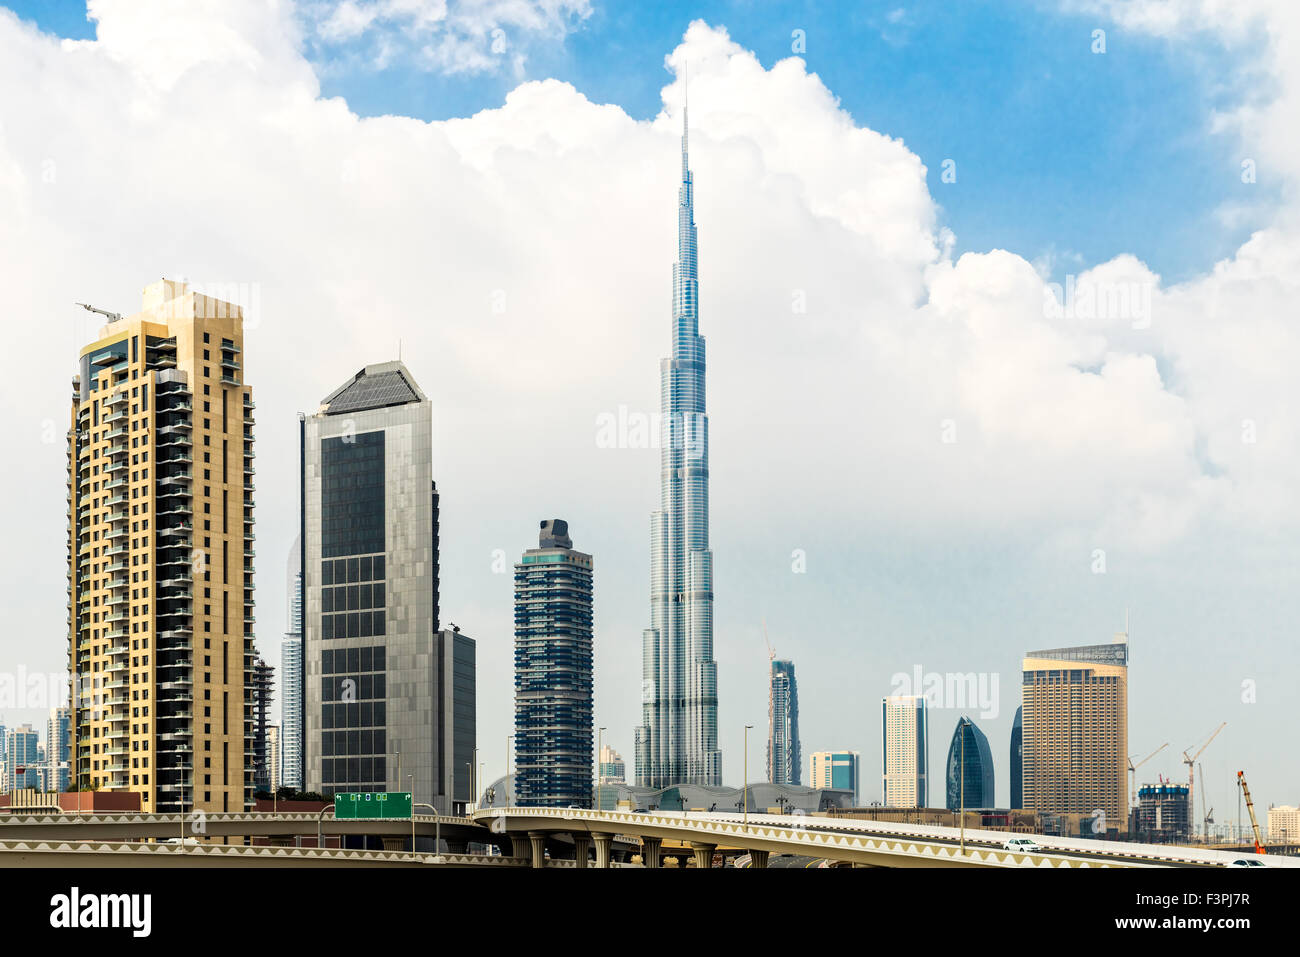 Dubai skyline at dusk, UAE. - Stock Image